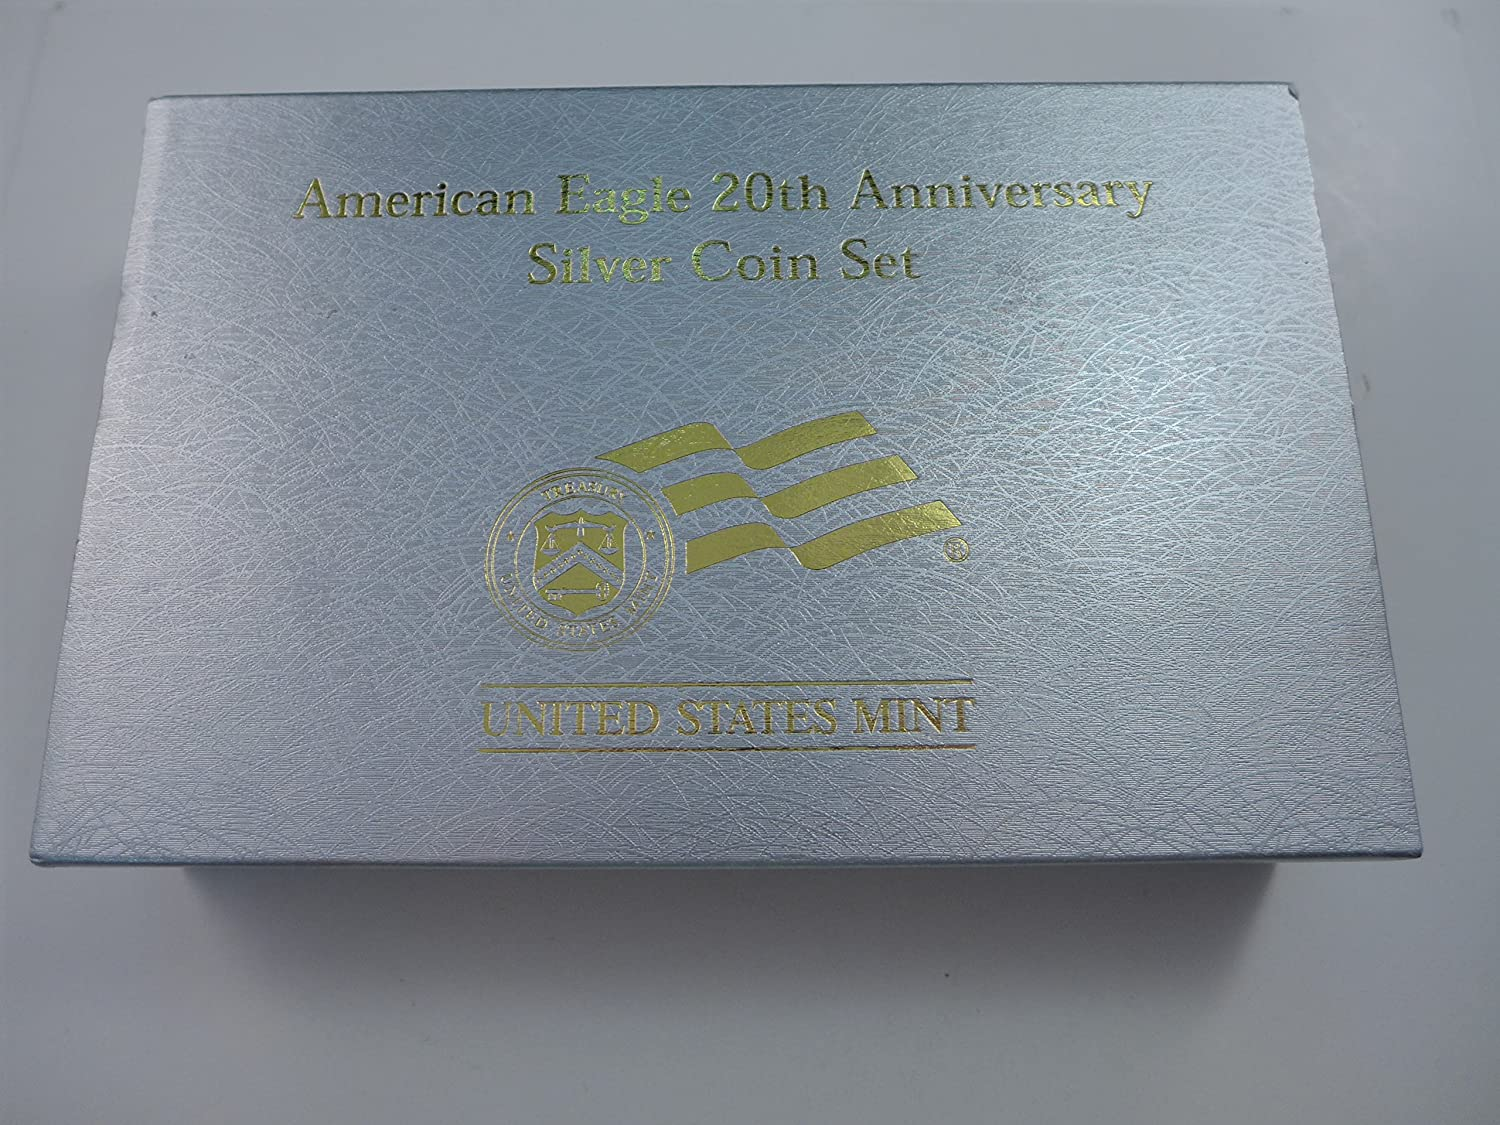 2006 American Eagle 20th Anniversary Silver Coin Set 3 Coins Proof and Reverse Proof Mint State